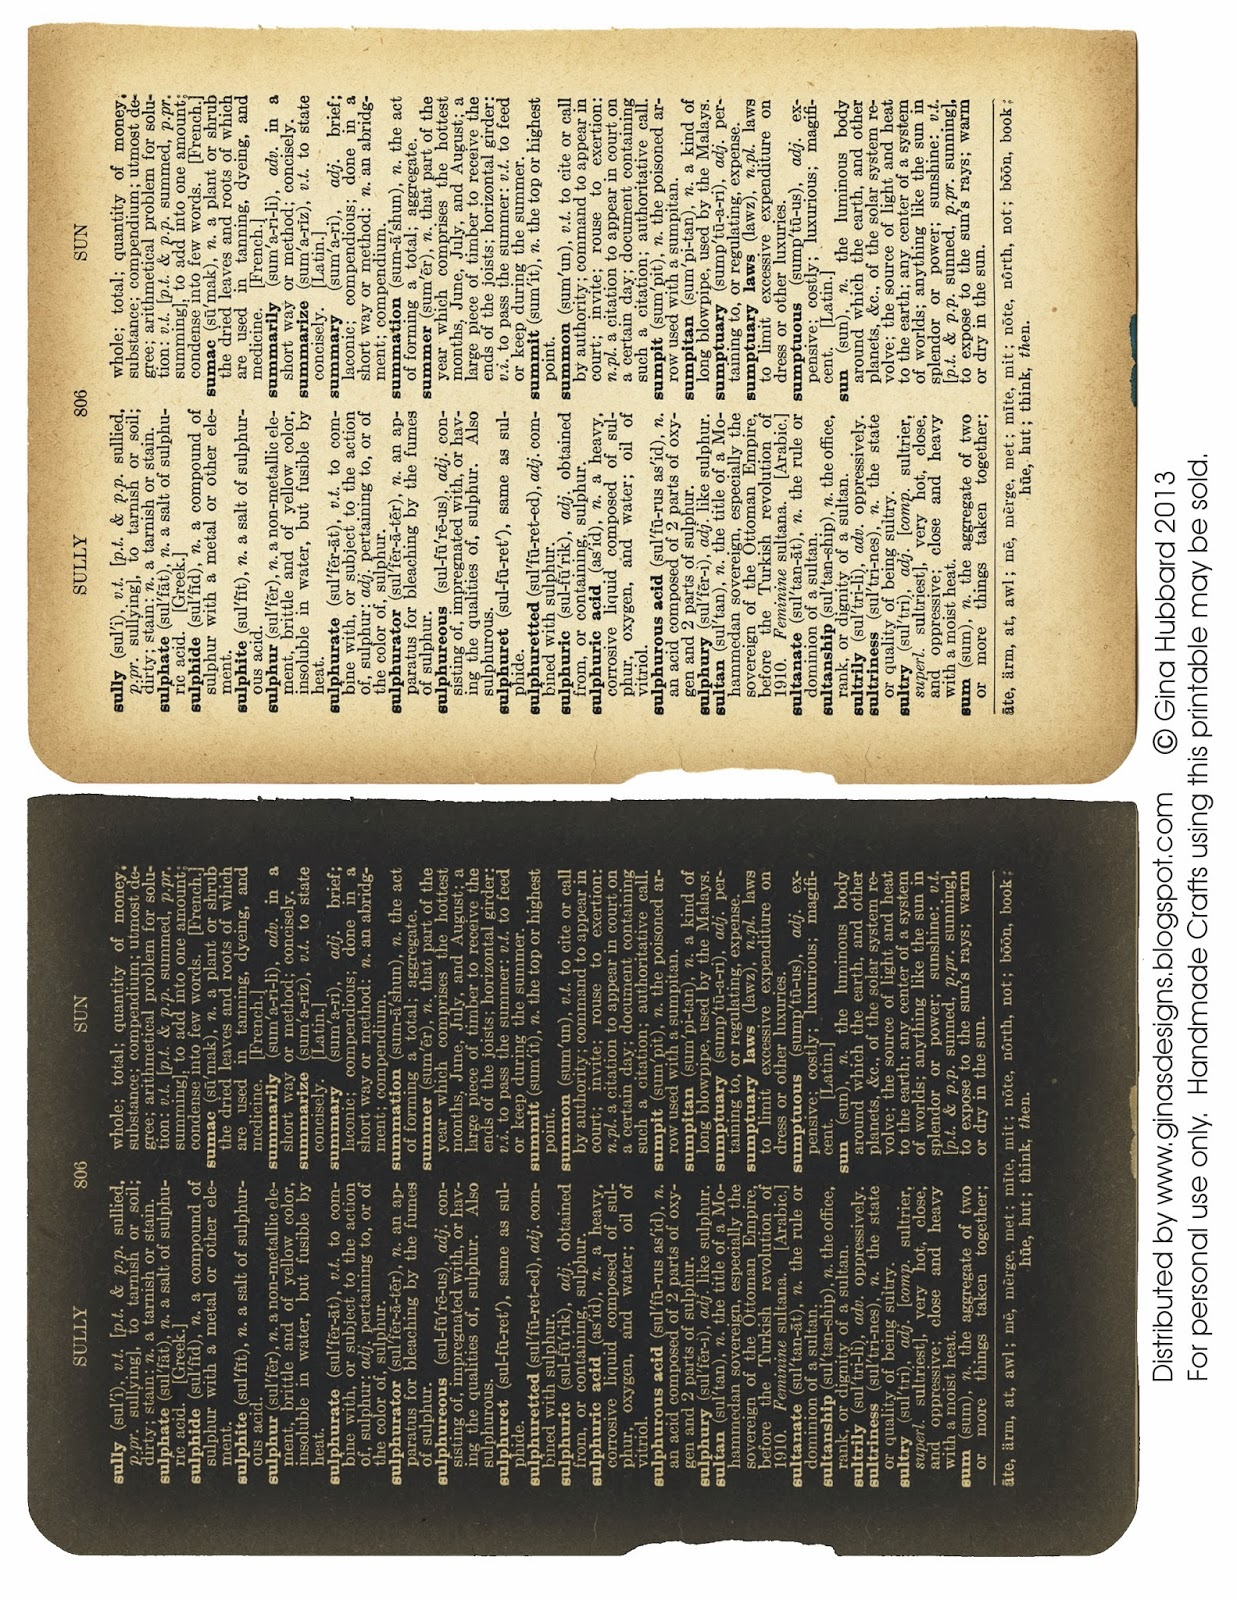 picture about Printable Dictionary Pages called Ginas Types: Freebie Friday Dictionary Internet pages